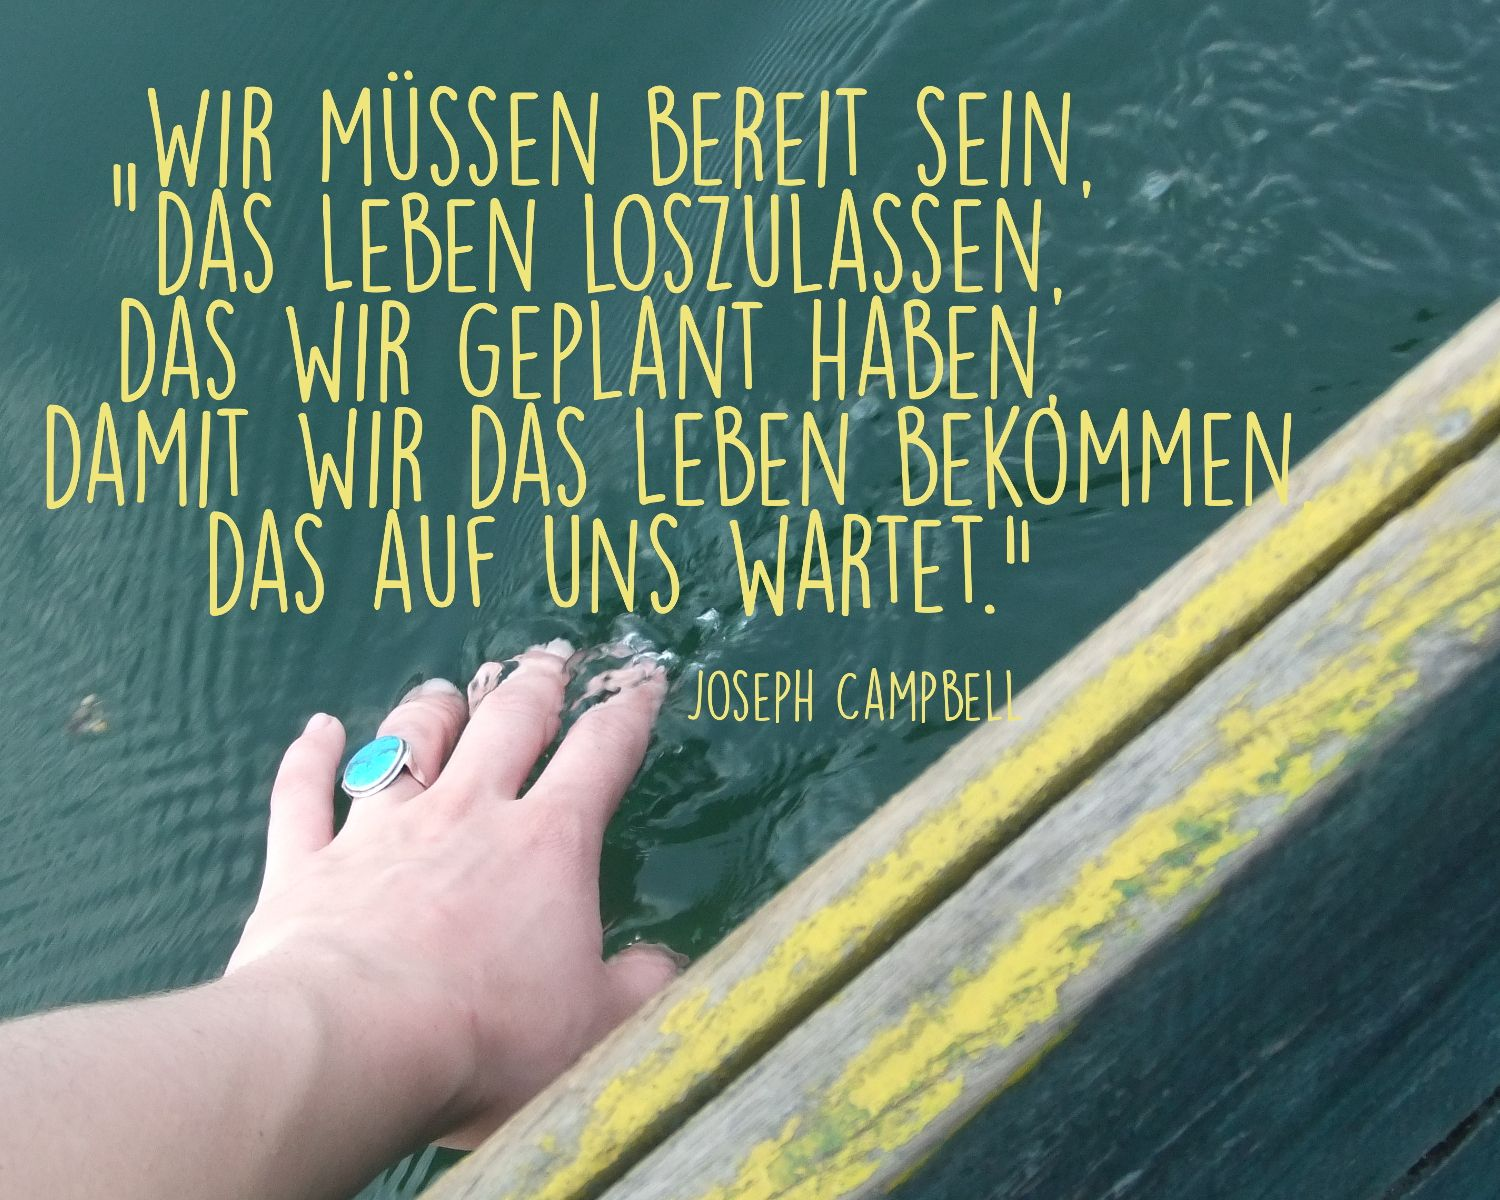 loslassen | zitate - quotes | pinterest